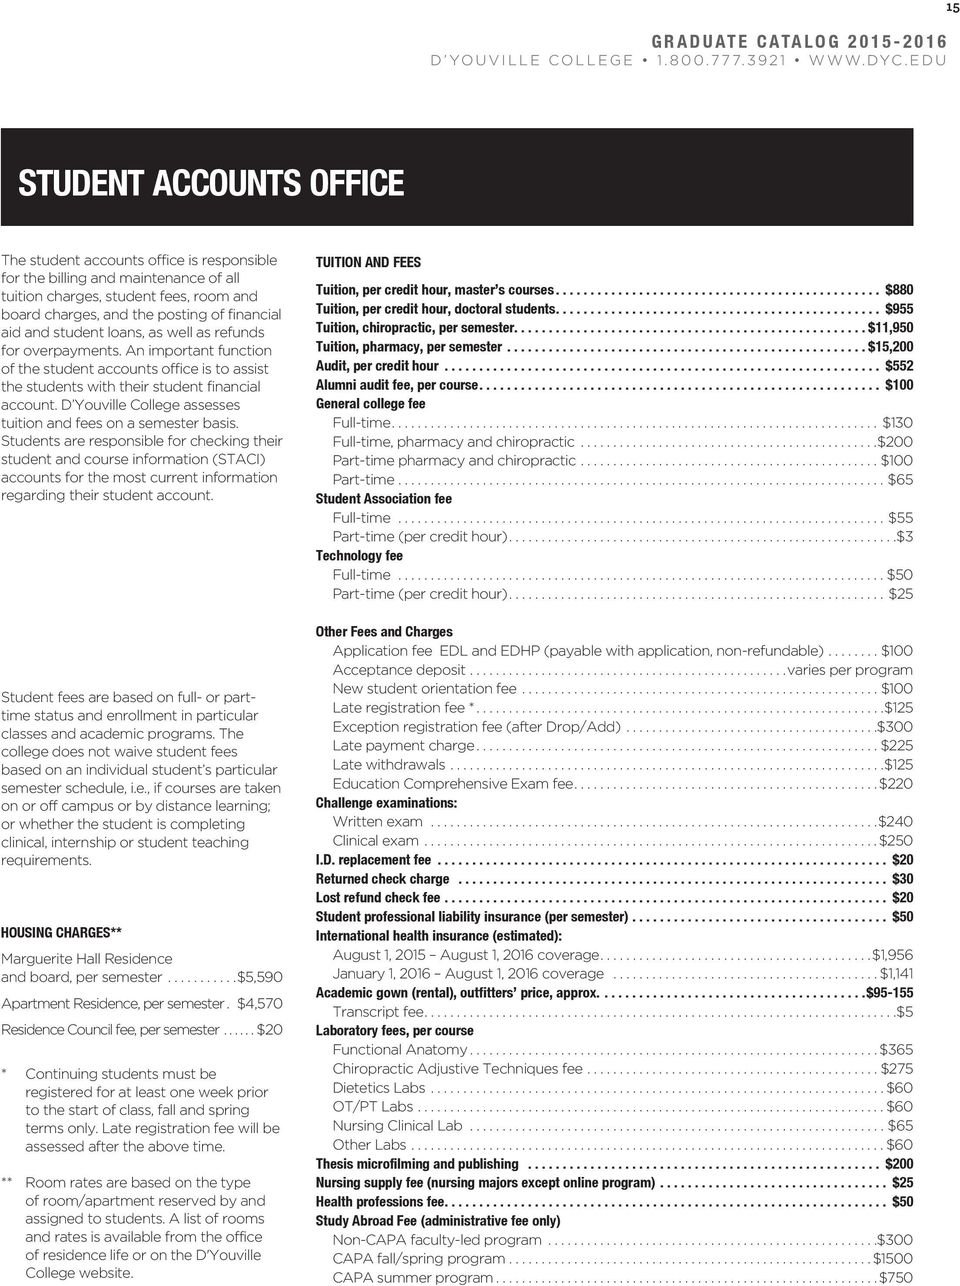 D Youville College assesses tuition and fees on a semester basis.